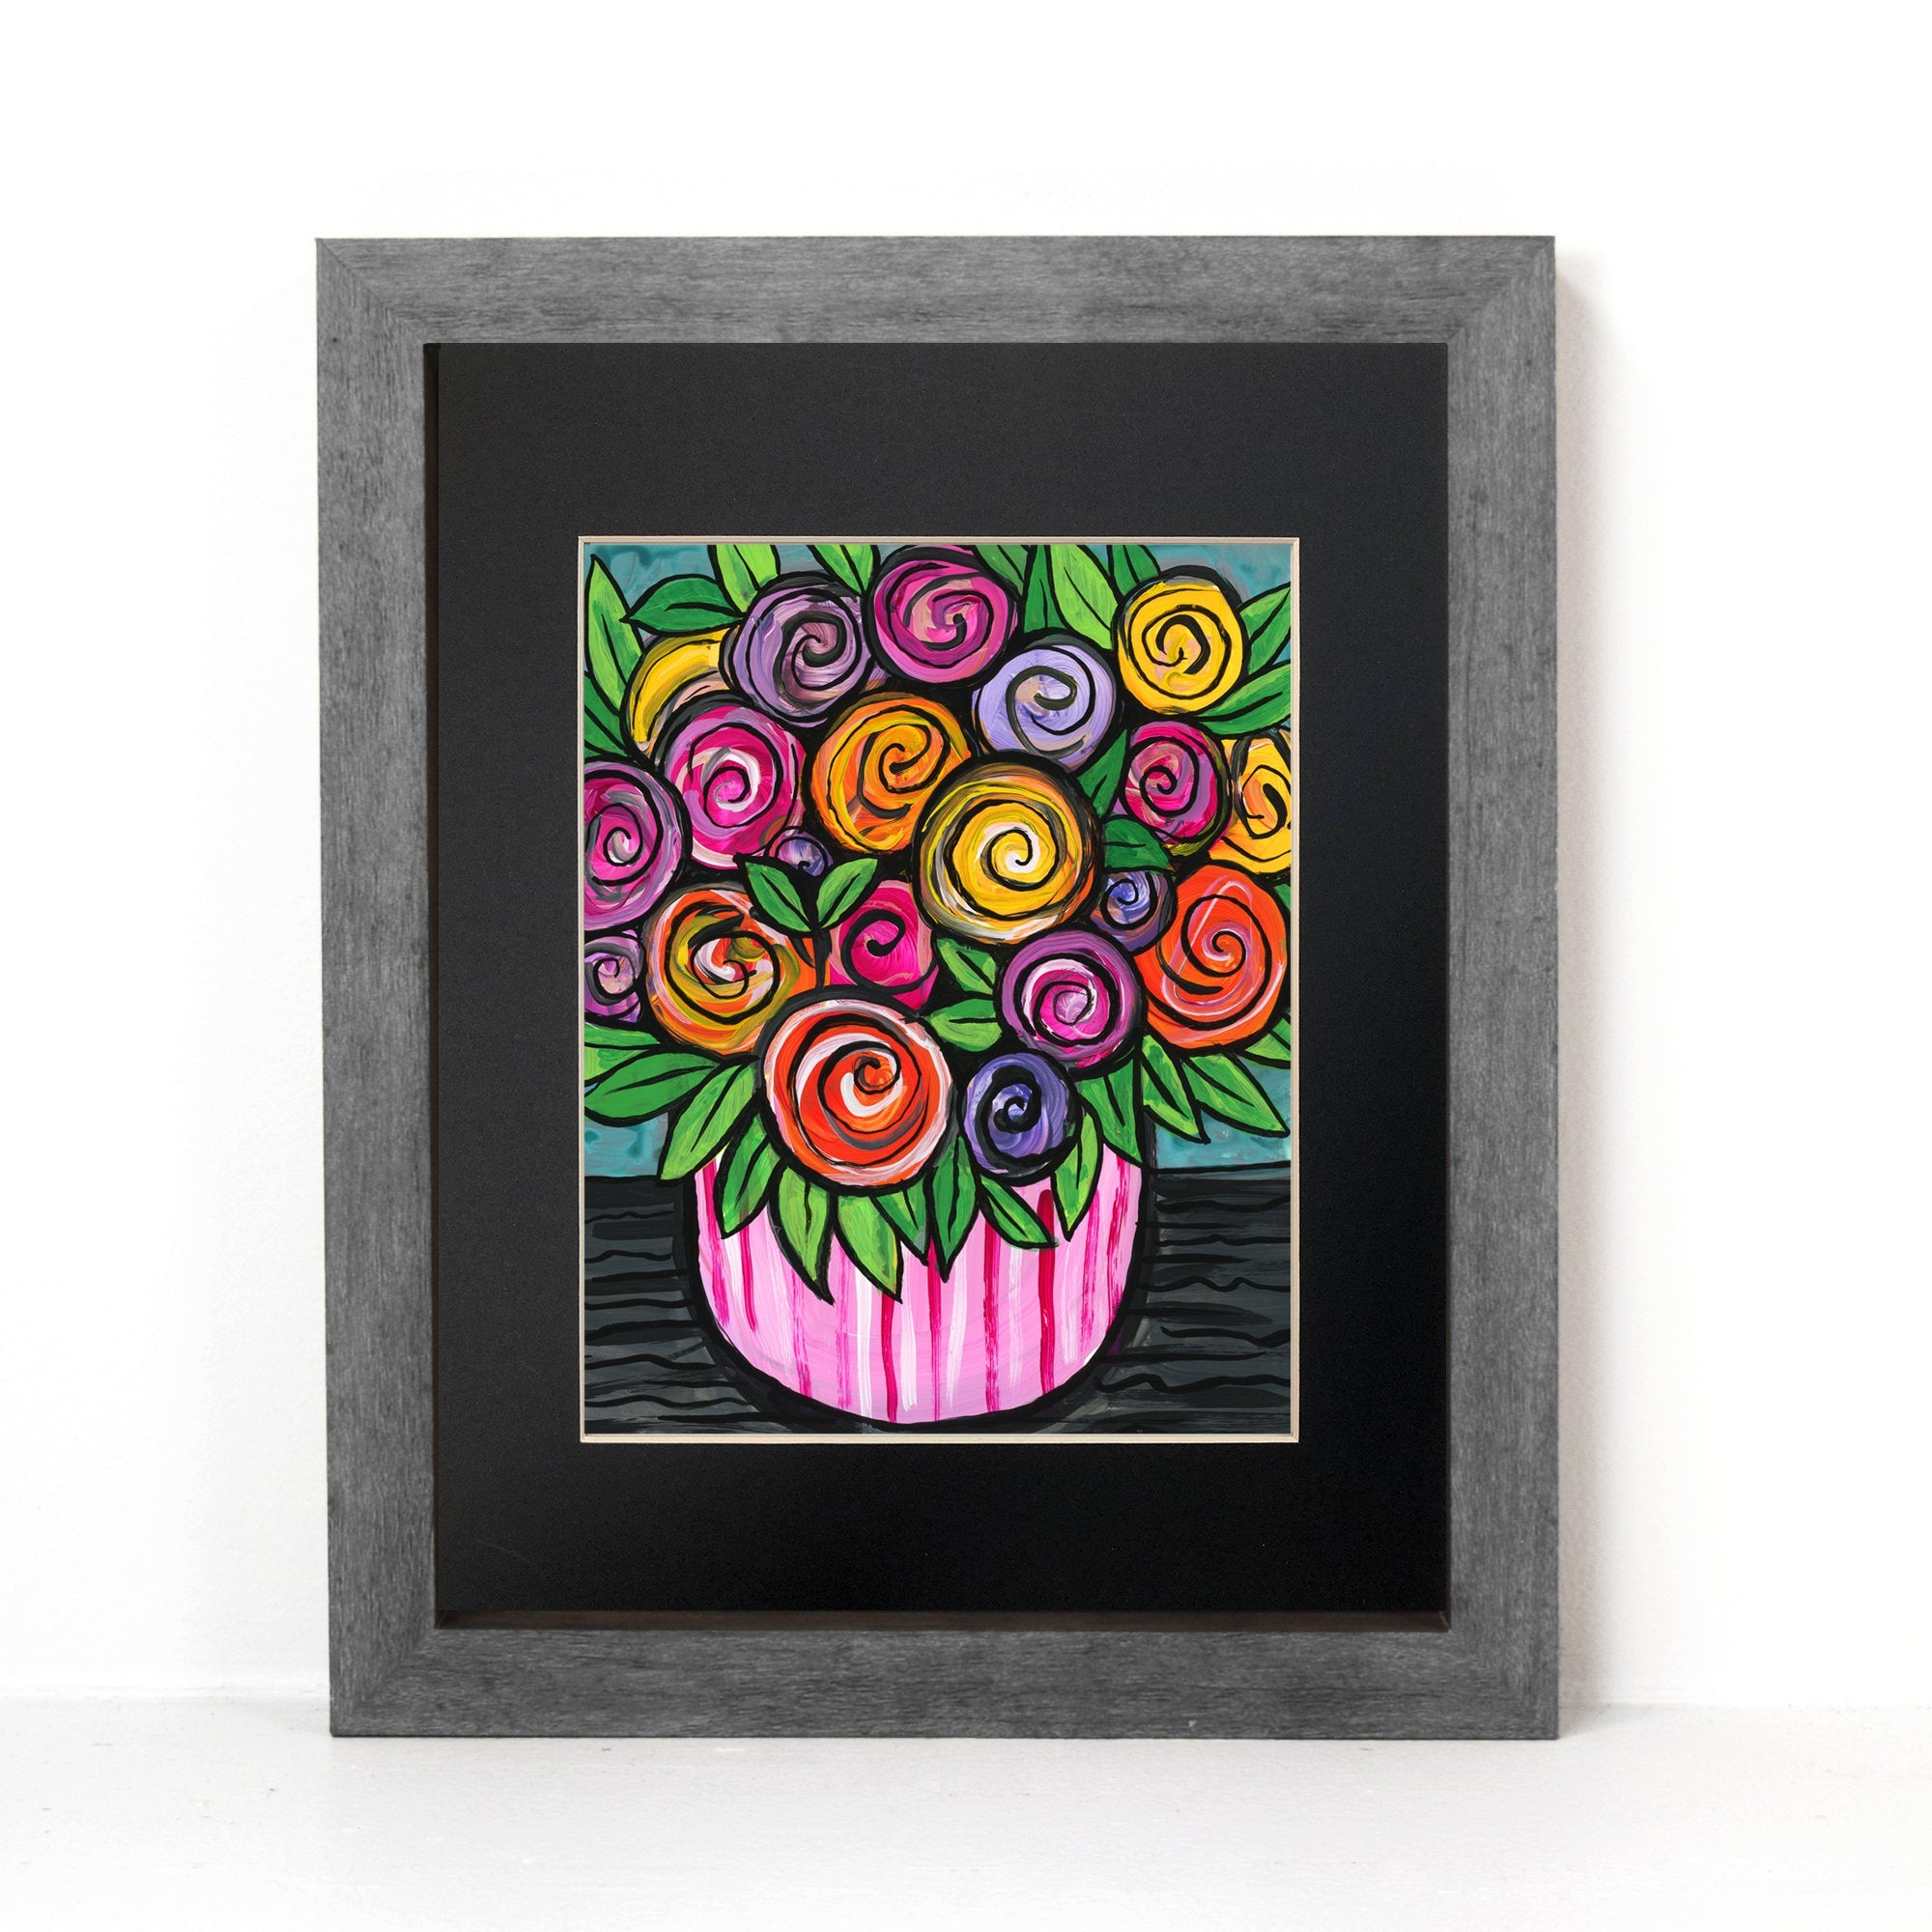 Bowl of Roses Print - Colorful Rose Art - Whimsical Floral Still Life - 8x10 with Optional Black Mat by Claudine Intner